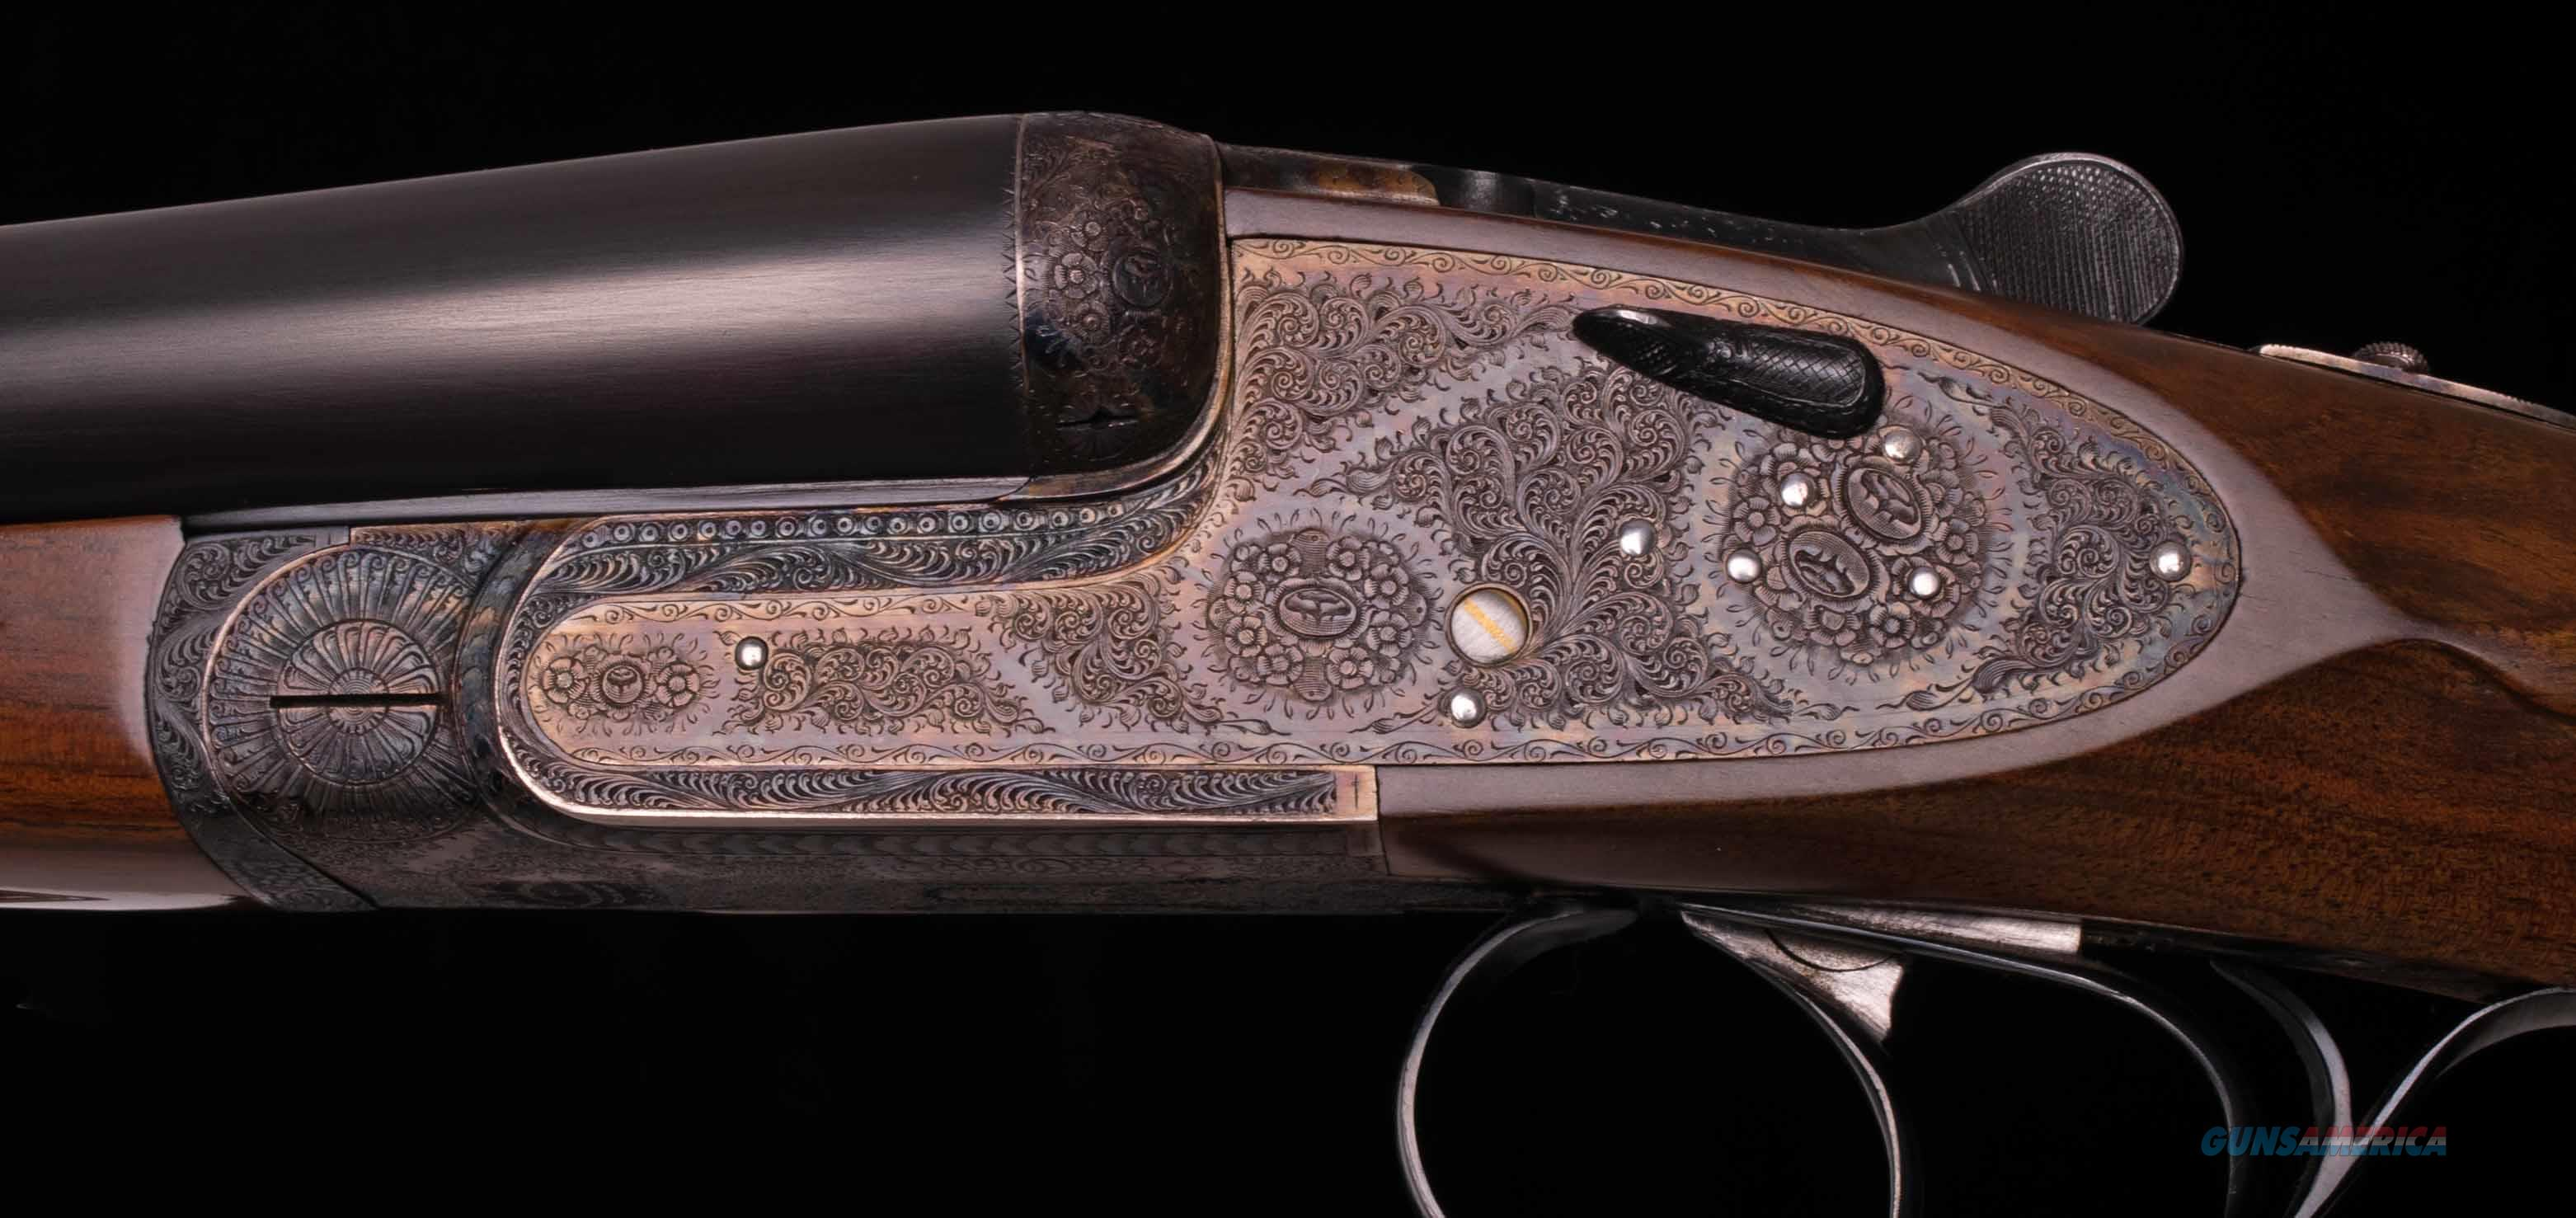 "AyA No. One 12 Gauge – BEST GUN, 99%, 28"", 6 ½ LBS., vintage firearms inc  Guns > Shotguns > AYA Shotguns"